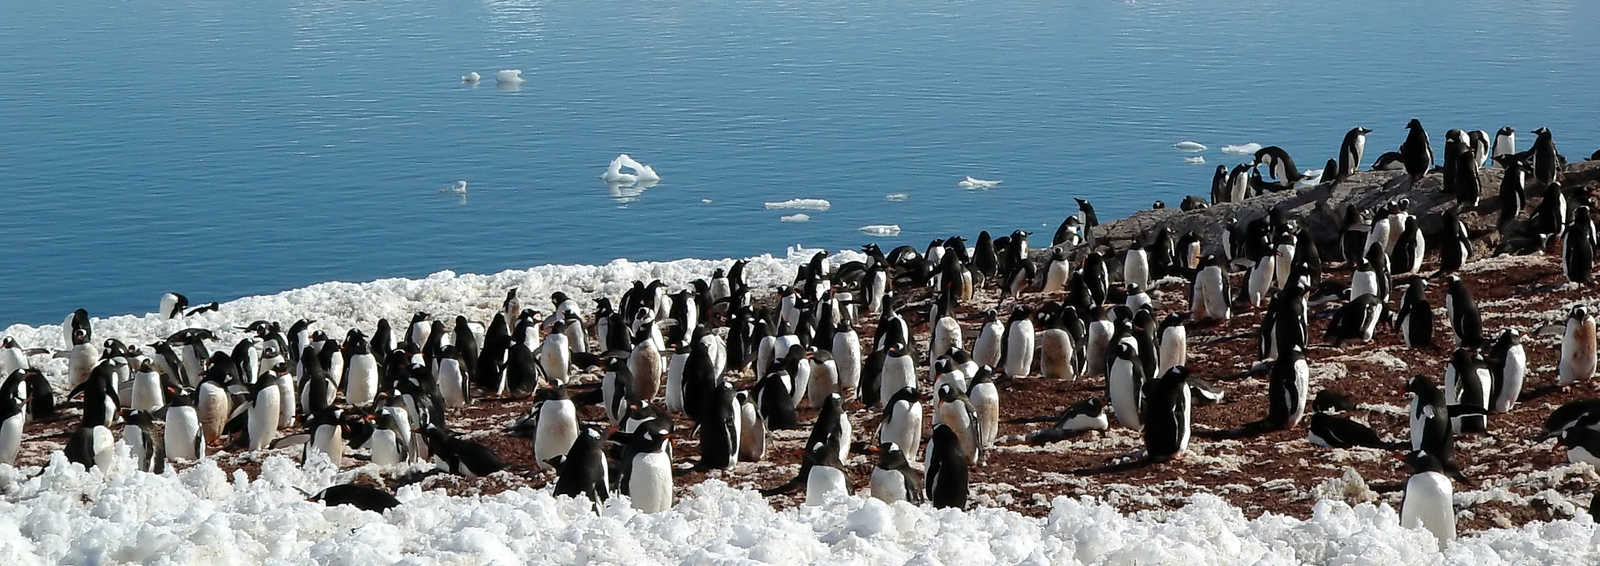 Antarctic penguin group